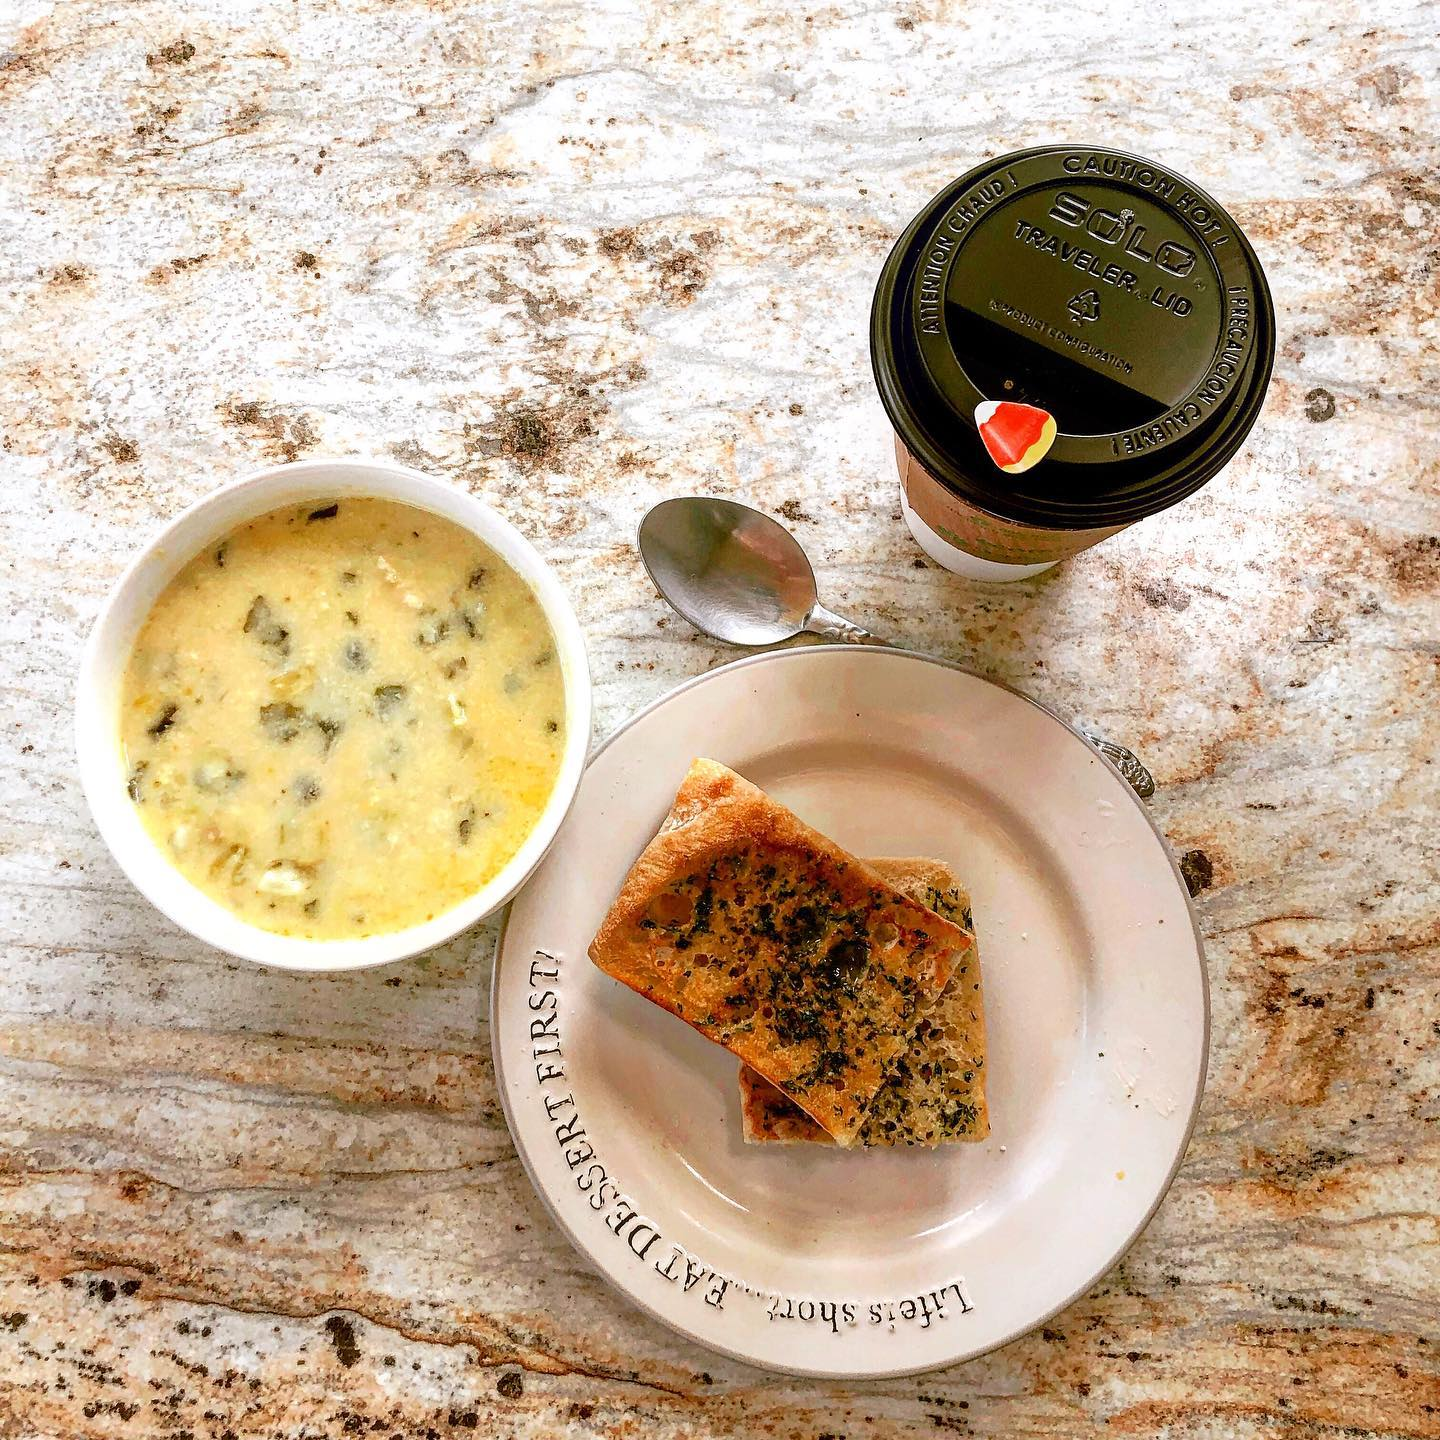 kickin' pepper-jack and broccoli soup with toast